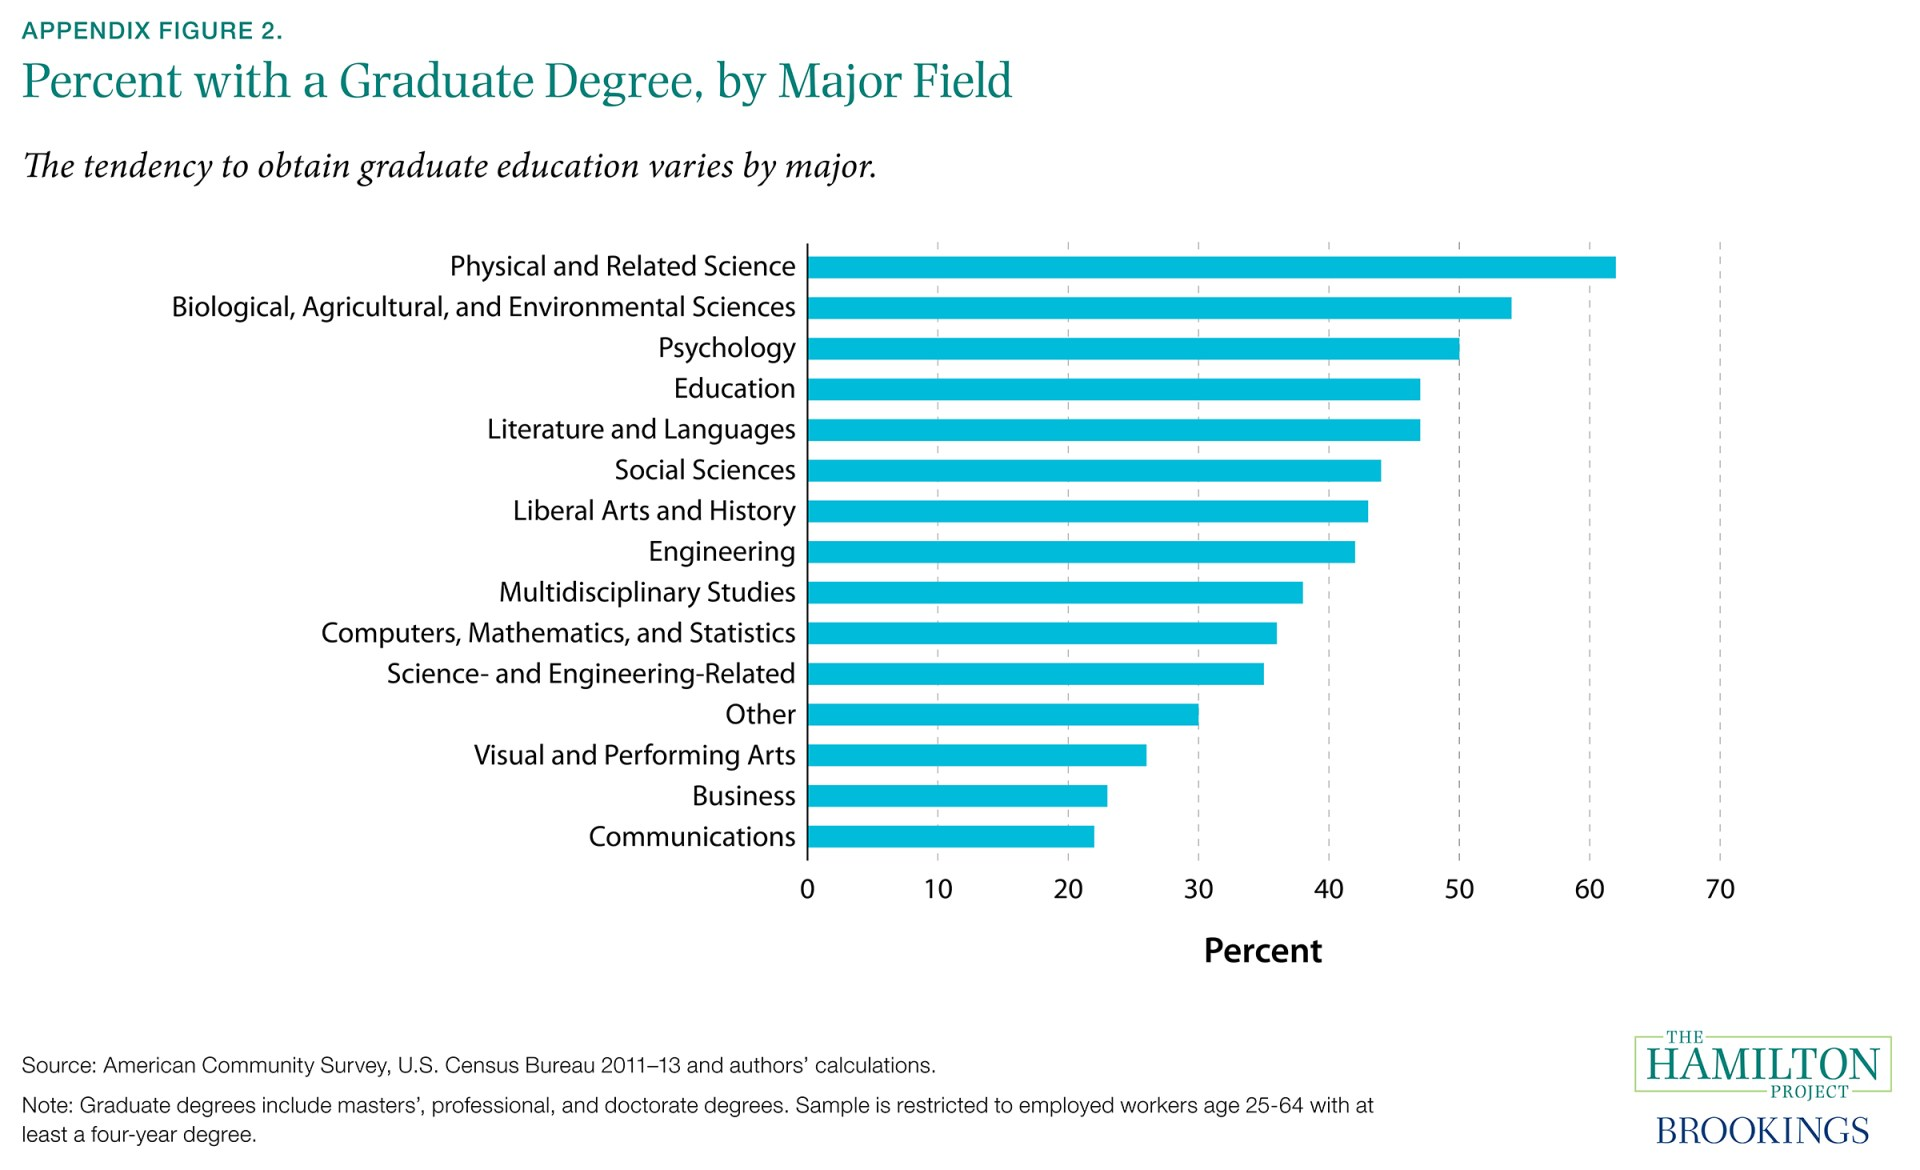 Appendix Figure 2. Percent with a Graduate Degree, by Major Field